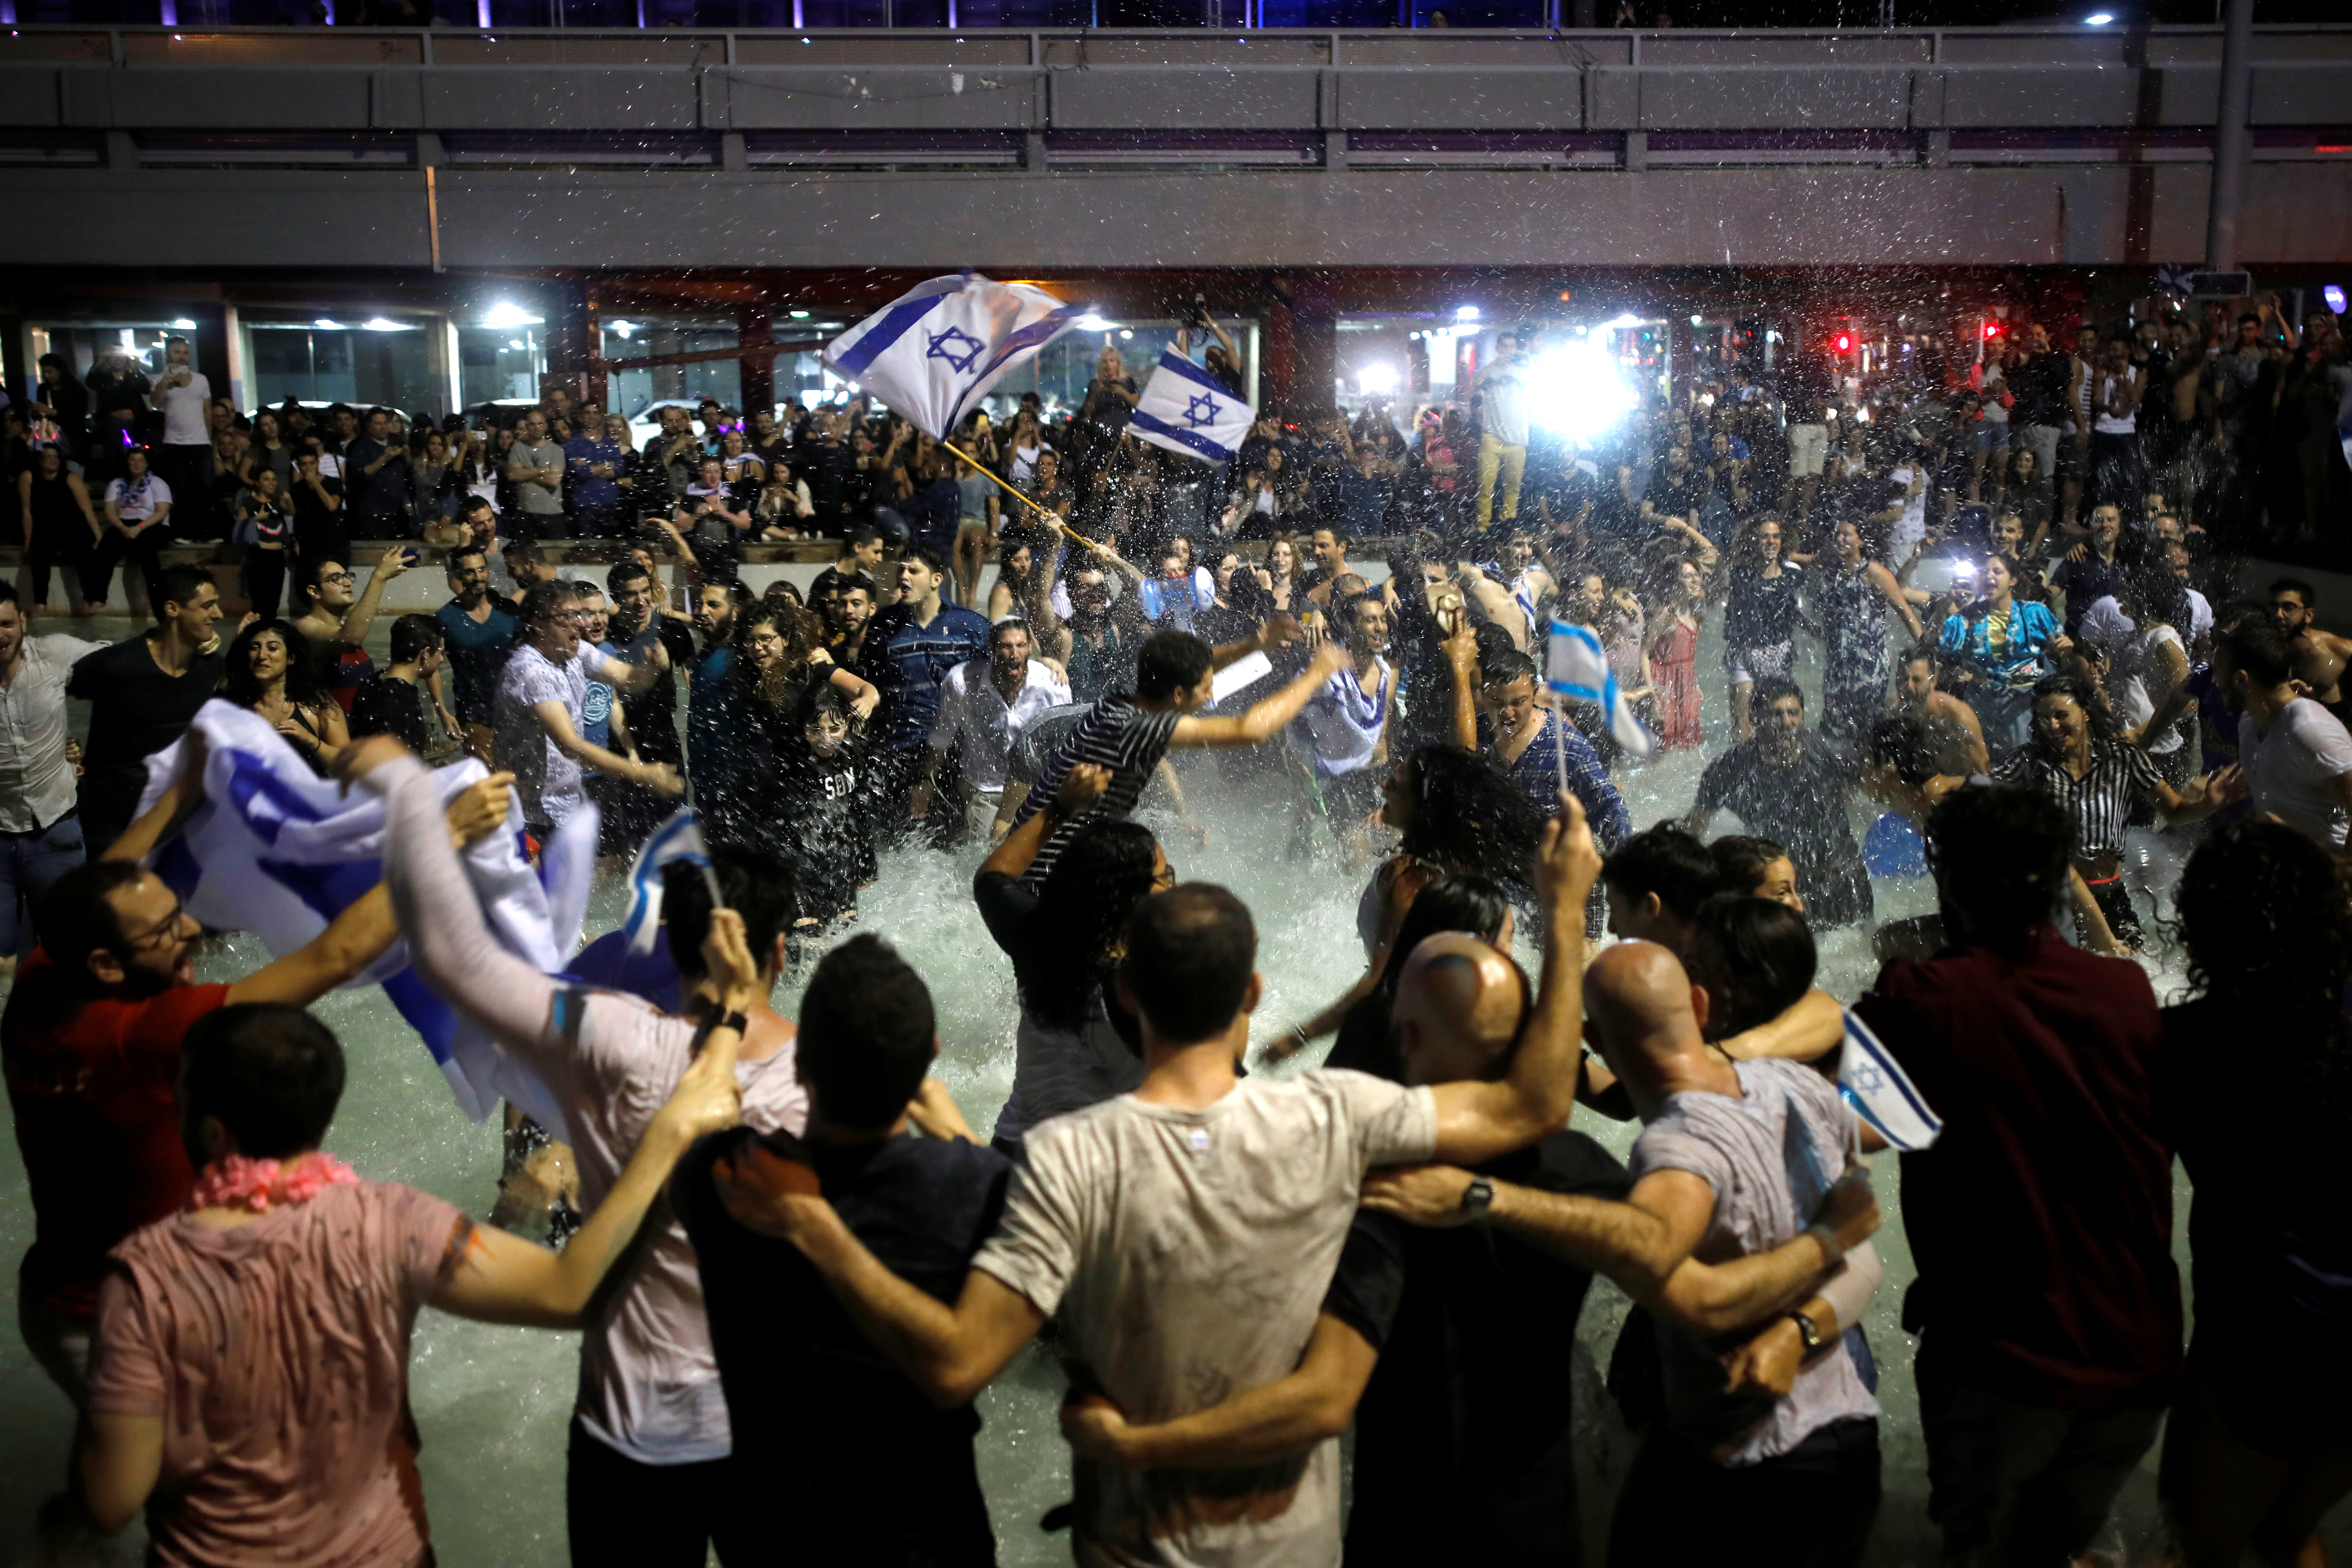 Israeli fans celebrate at Rabin square in Tel Aviv Israel, after Israeli singer Netta Barzilai won the Grand Final of Eurovision Song Contest 2018, May 13, 2018. (Reuters/Corinna Kern)